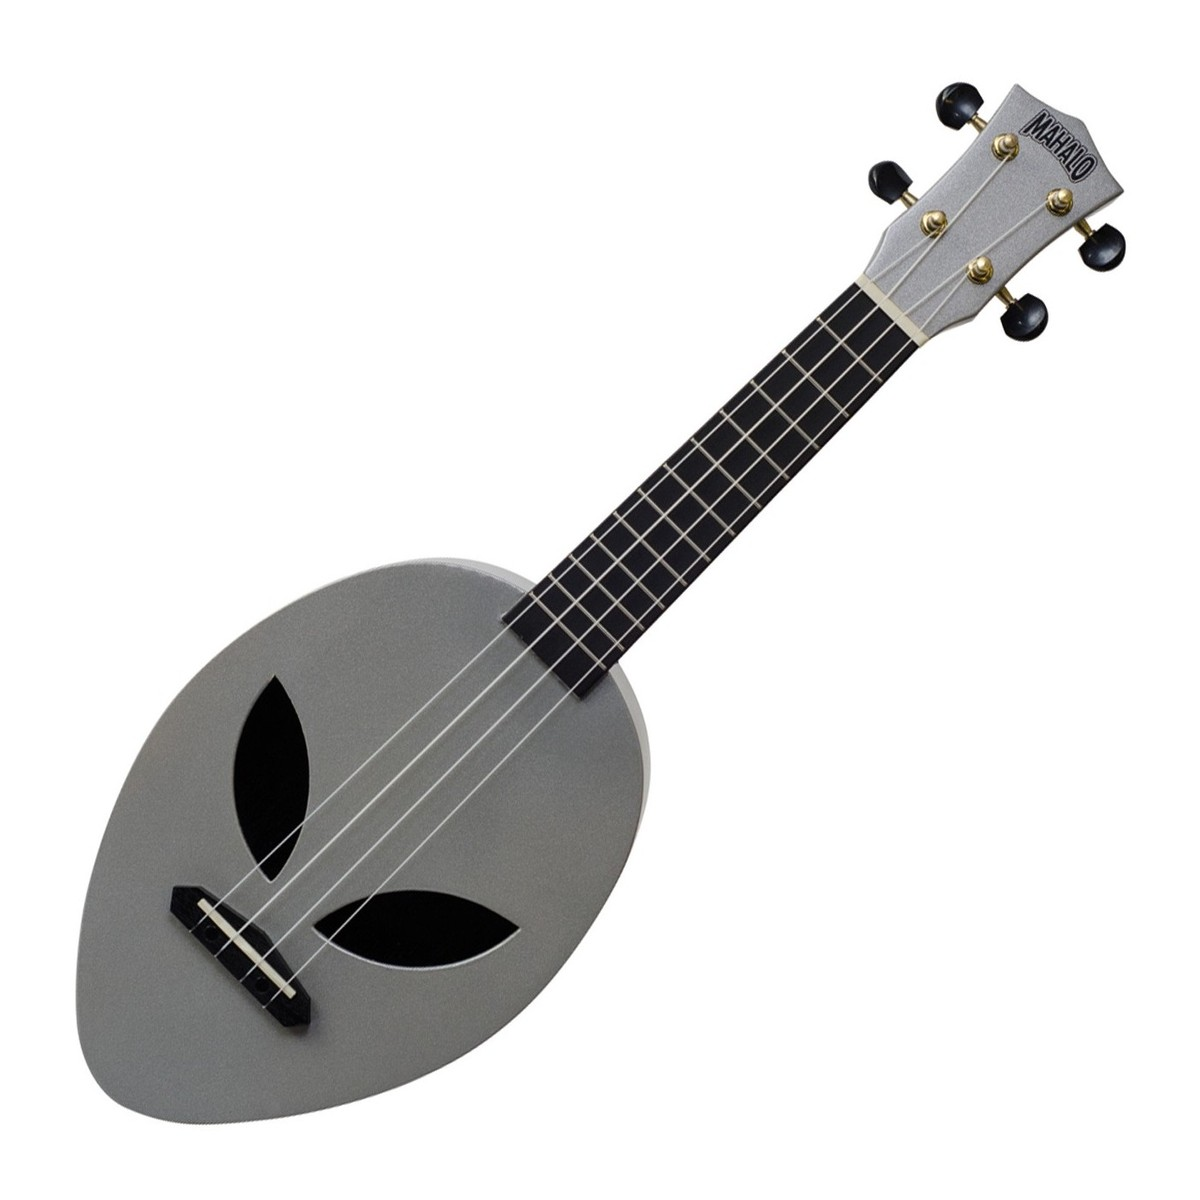 mahalo creative alien soprano ukulele silver at gear4music. Black Bedroom Furniture Sets. Home Design Ideas